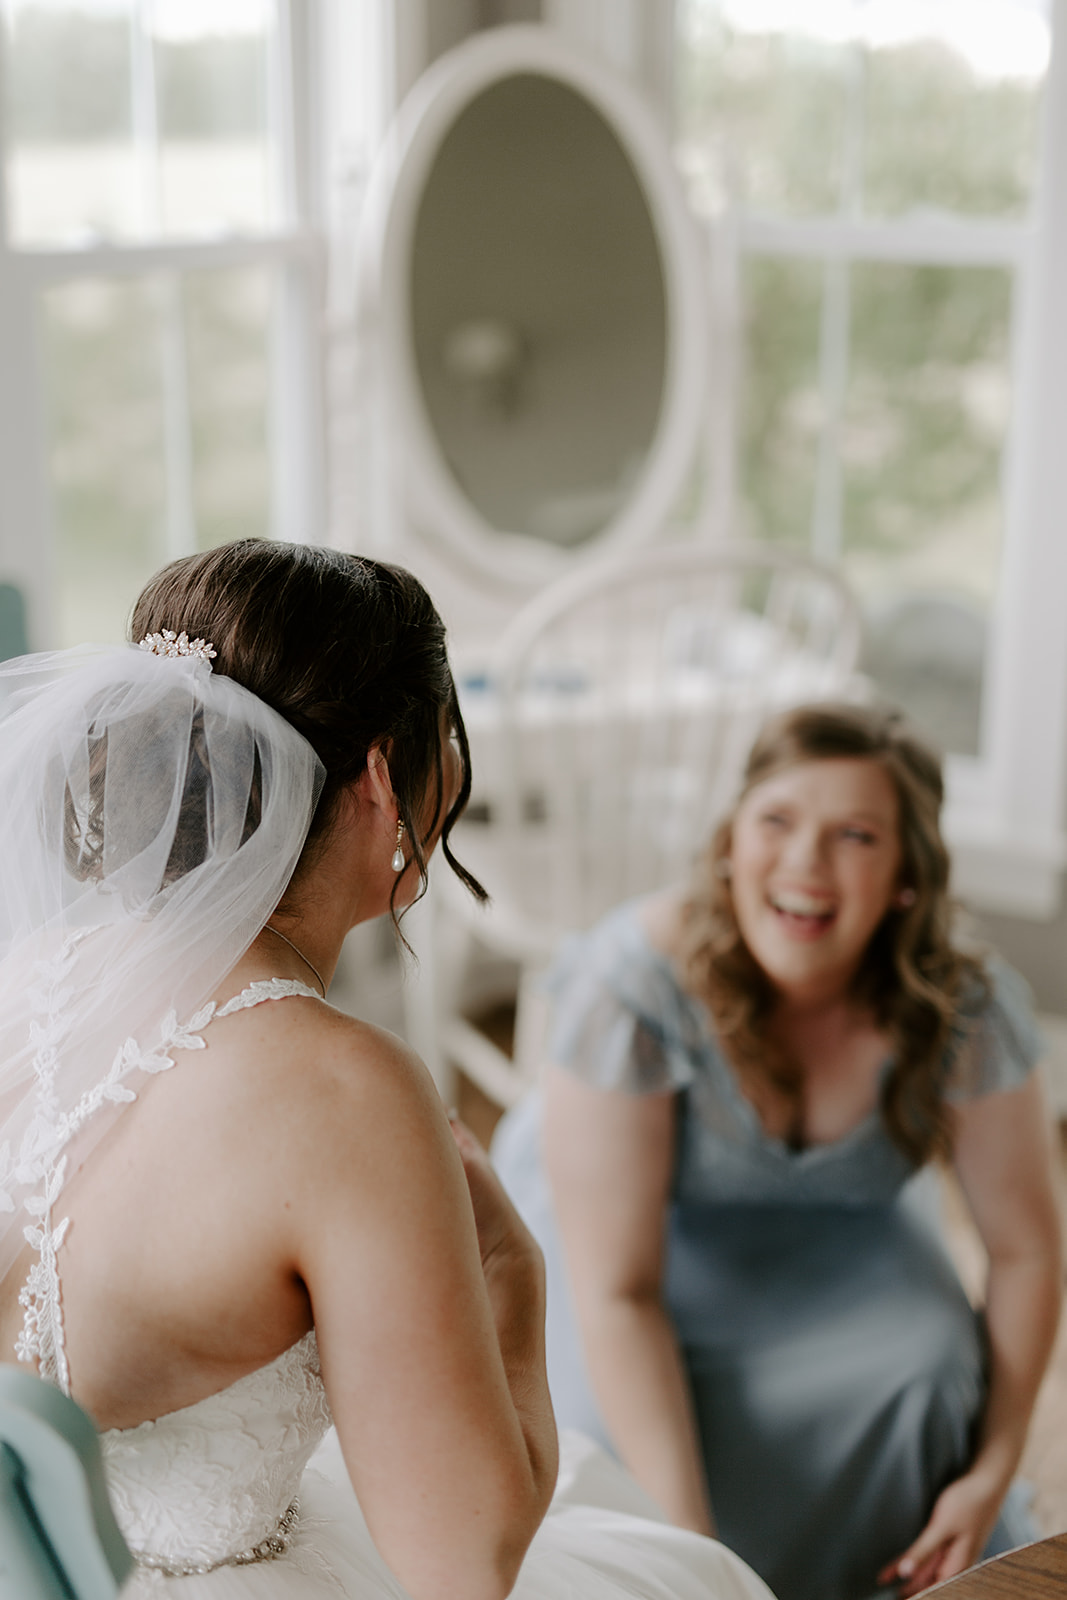 Kendra_and_Mattew_Indiana_Wedding_by_Emily_Wehner-161.jpg